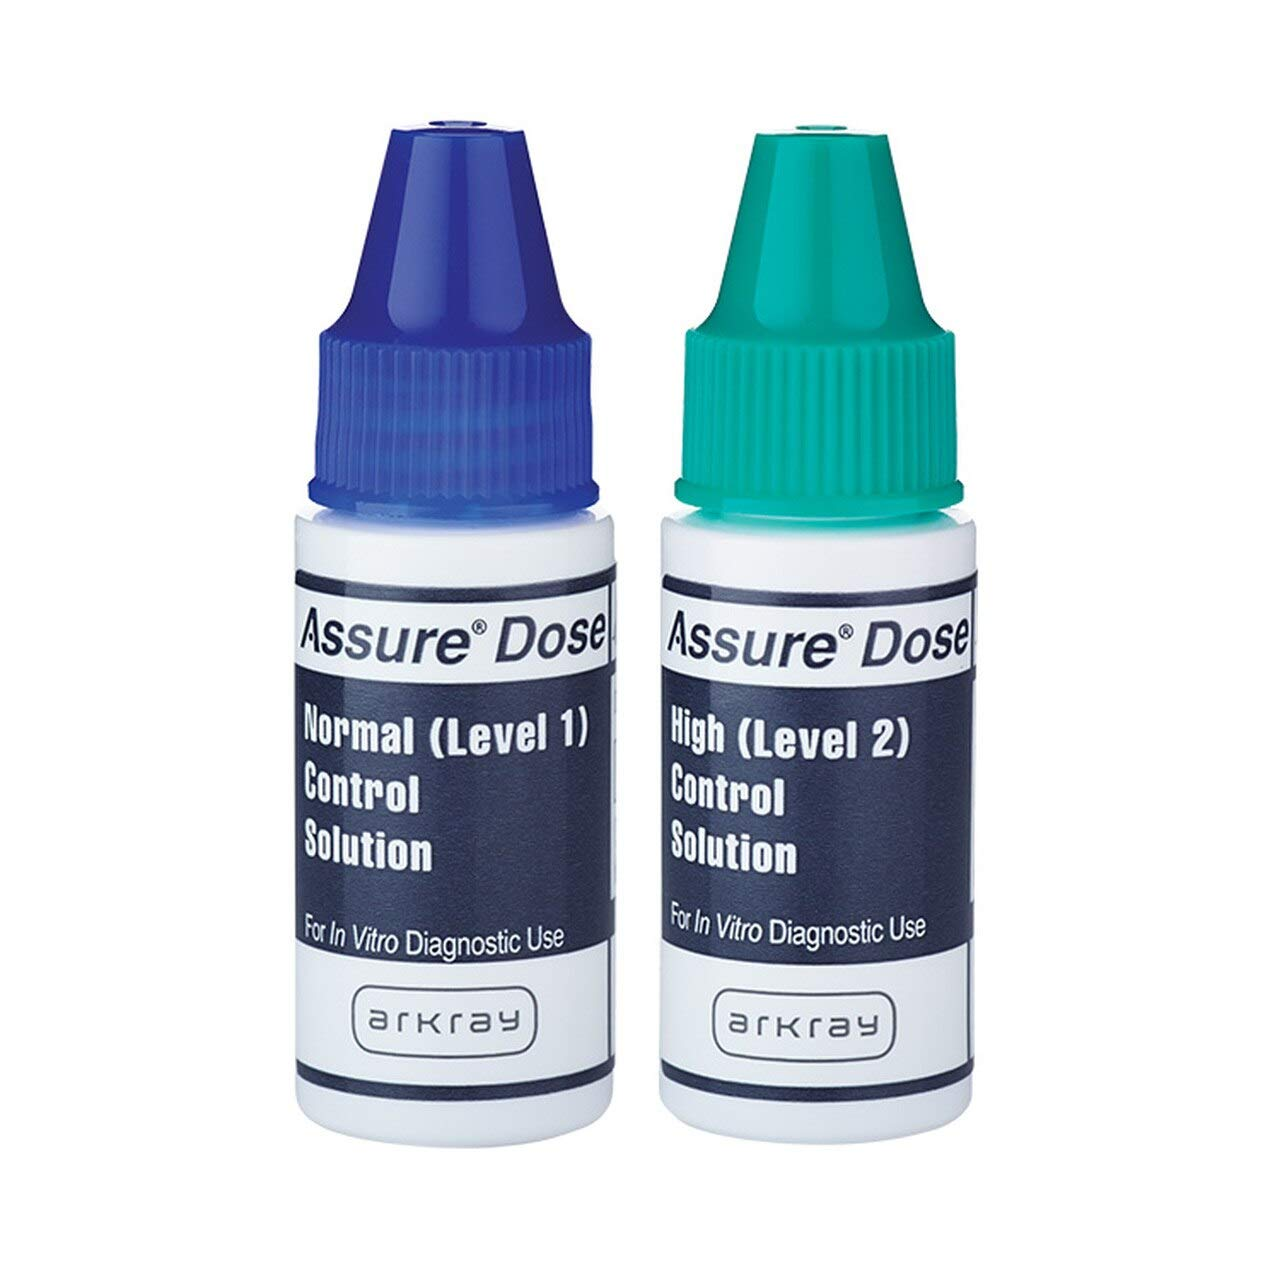 Arkray Assure® Dose Control Solutions 500006